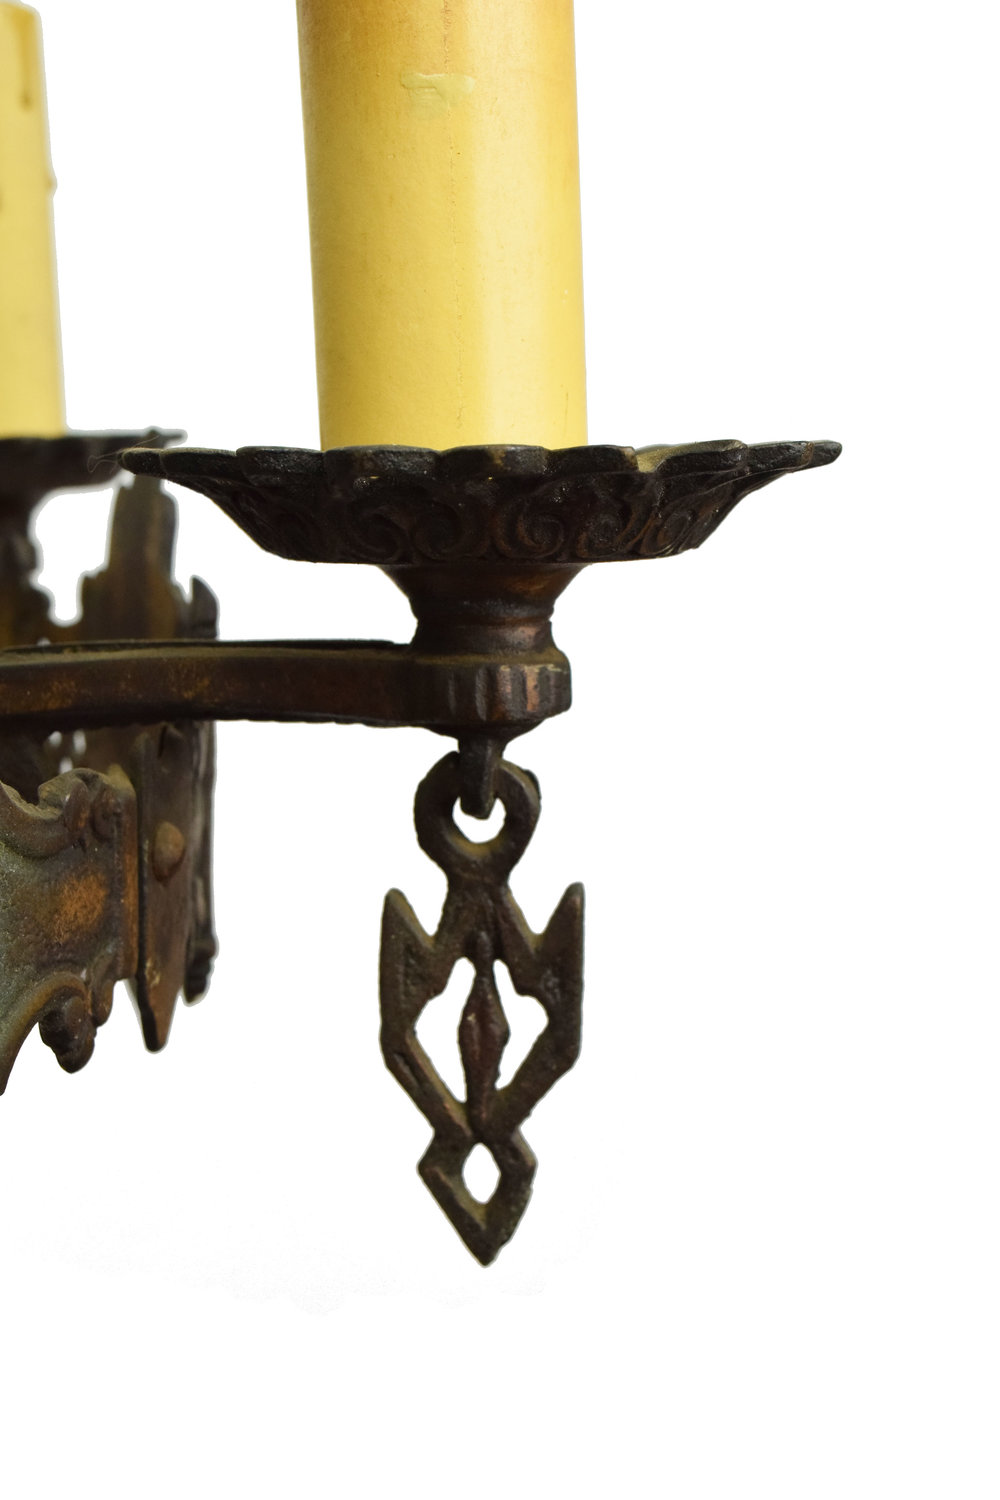 44303-5-candle-tudor-chandelier-light-detail.jpg